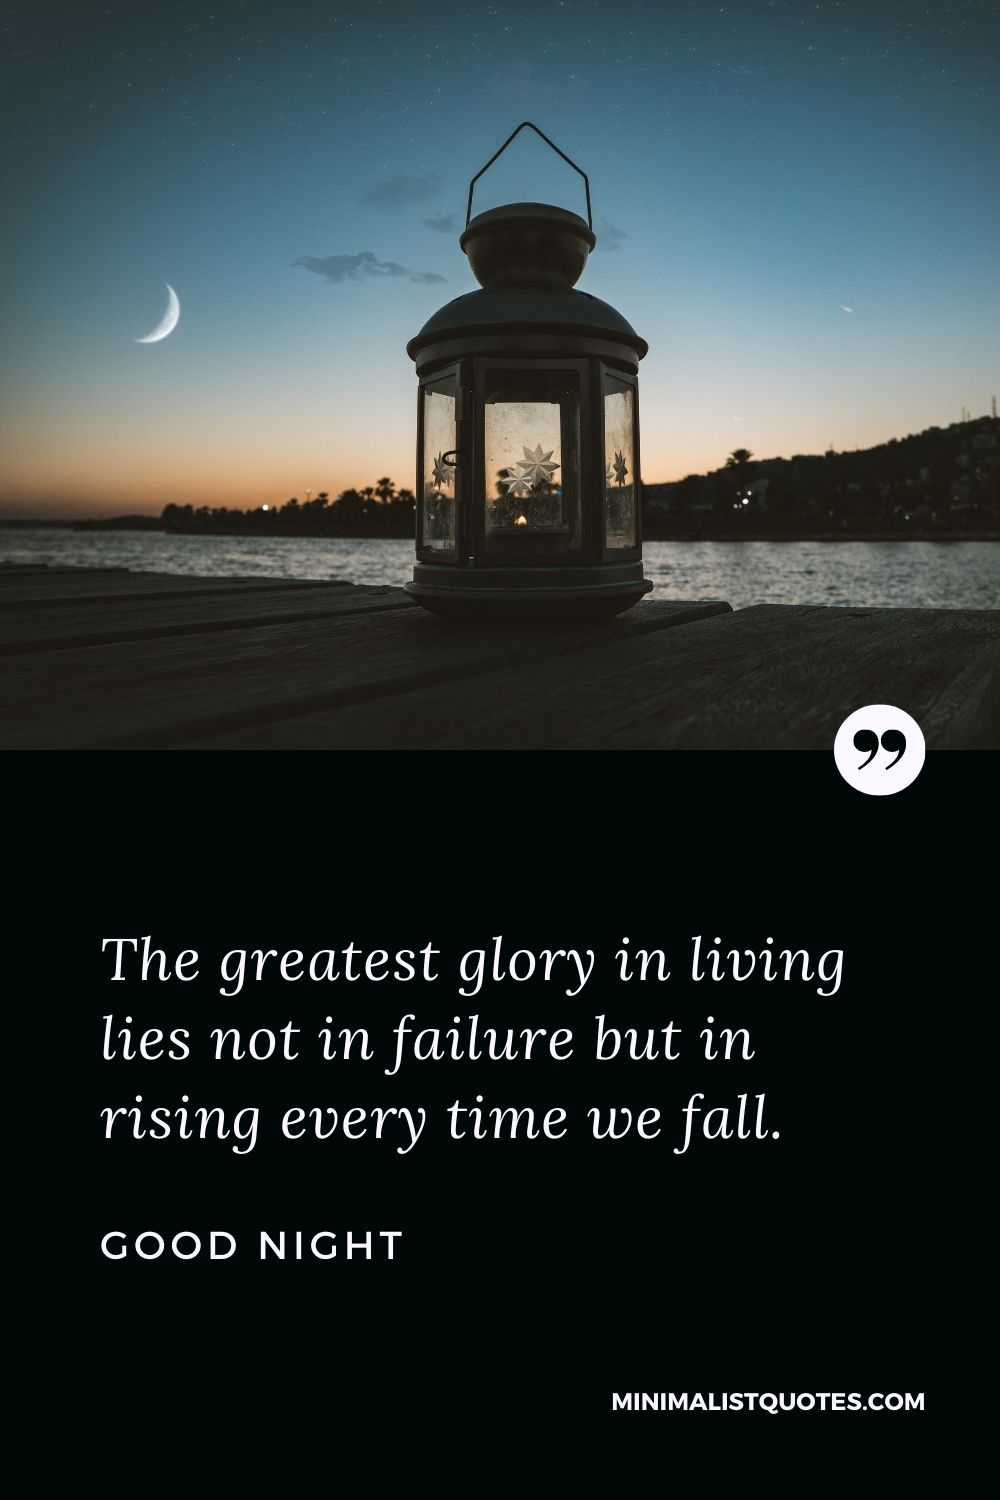 Good Night Wish & Message With Image: The greatest glory in living lies not in failurebut in rising every time we fall.